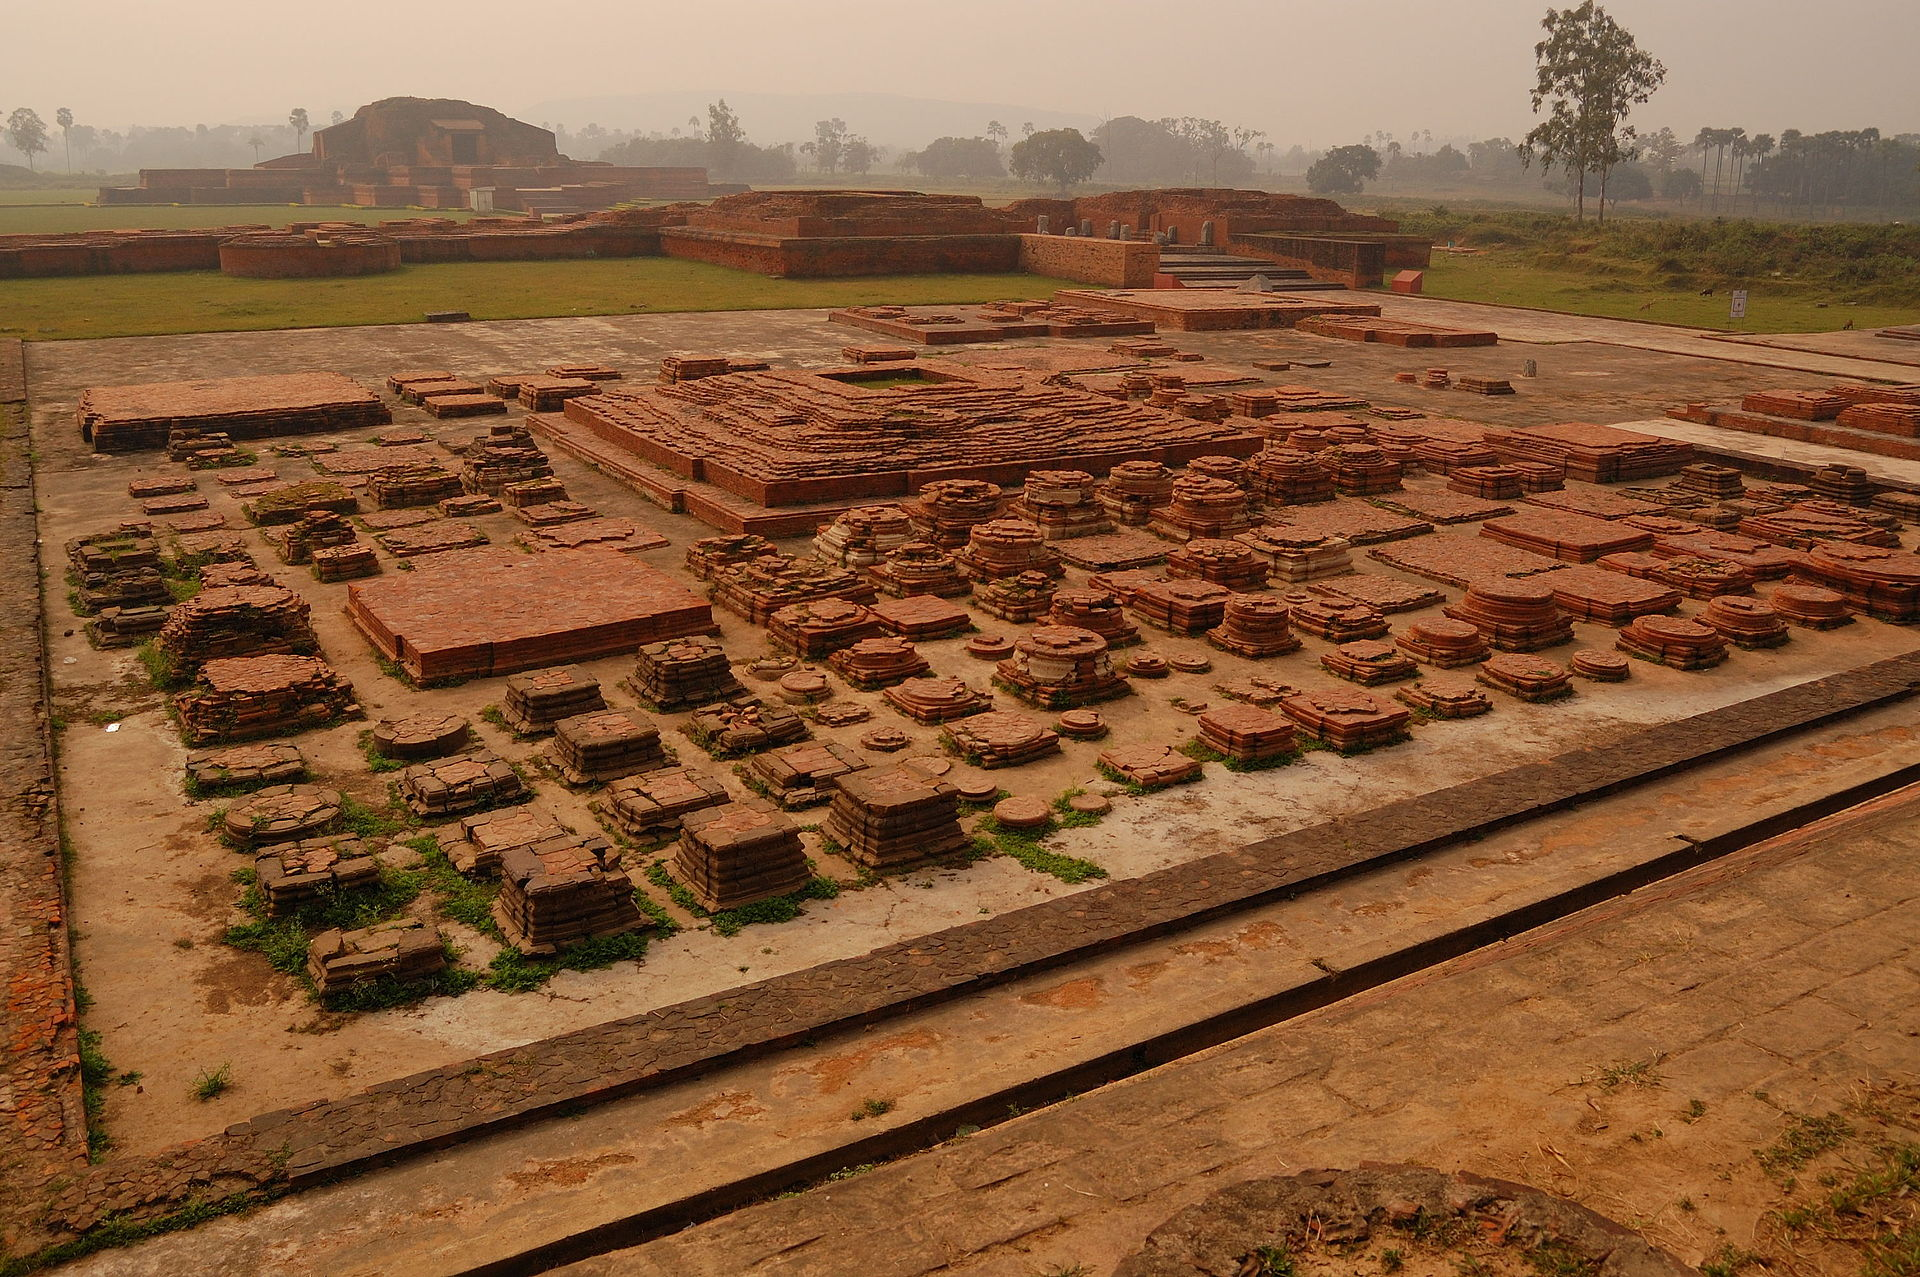 The landscape of the Vikramshila remains https://upload.wikimedia.org/wikipedia/commons/b/b3/VikramshilaRuins.jpg